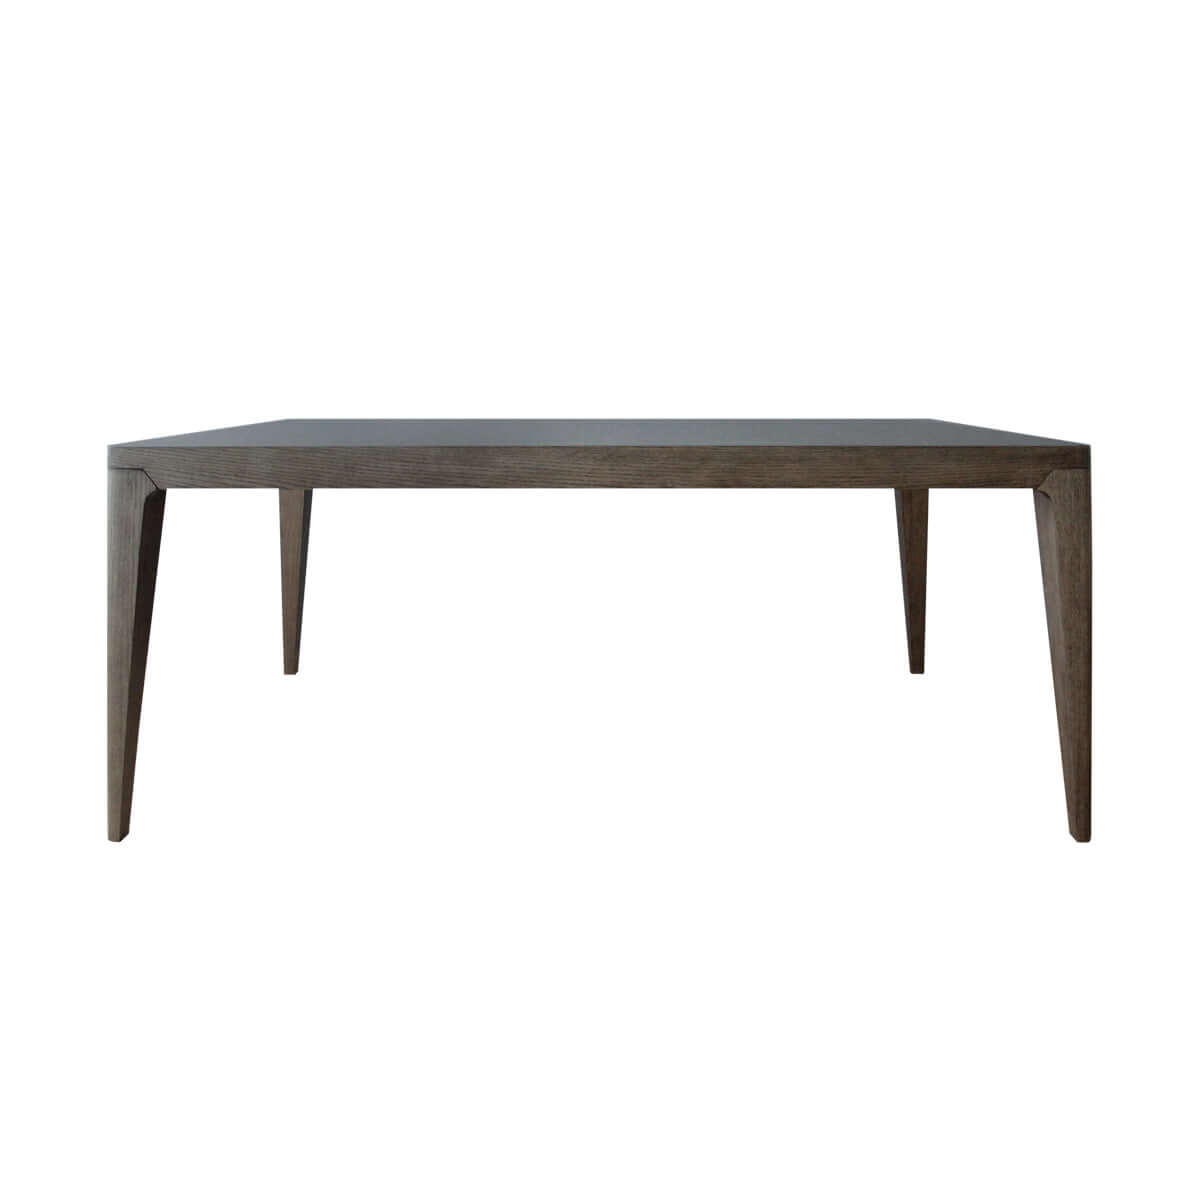 online furniture - contemporary wooden dining table